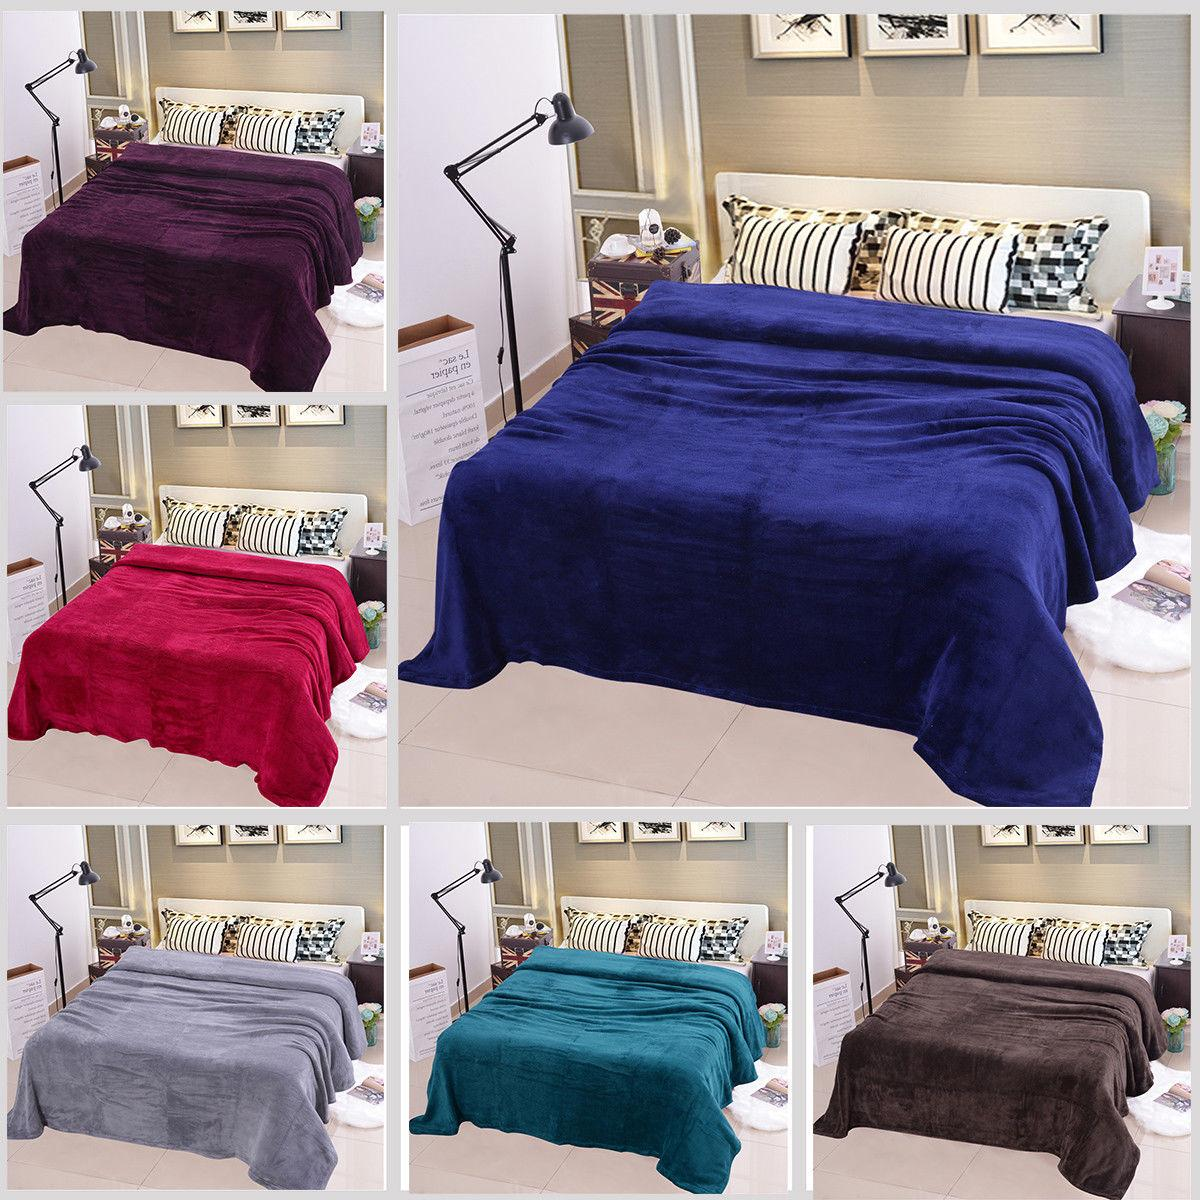 Sofa King Queen Solid Plush Fleece Blanket For Sofa Bed Soft